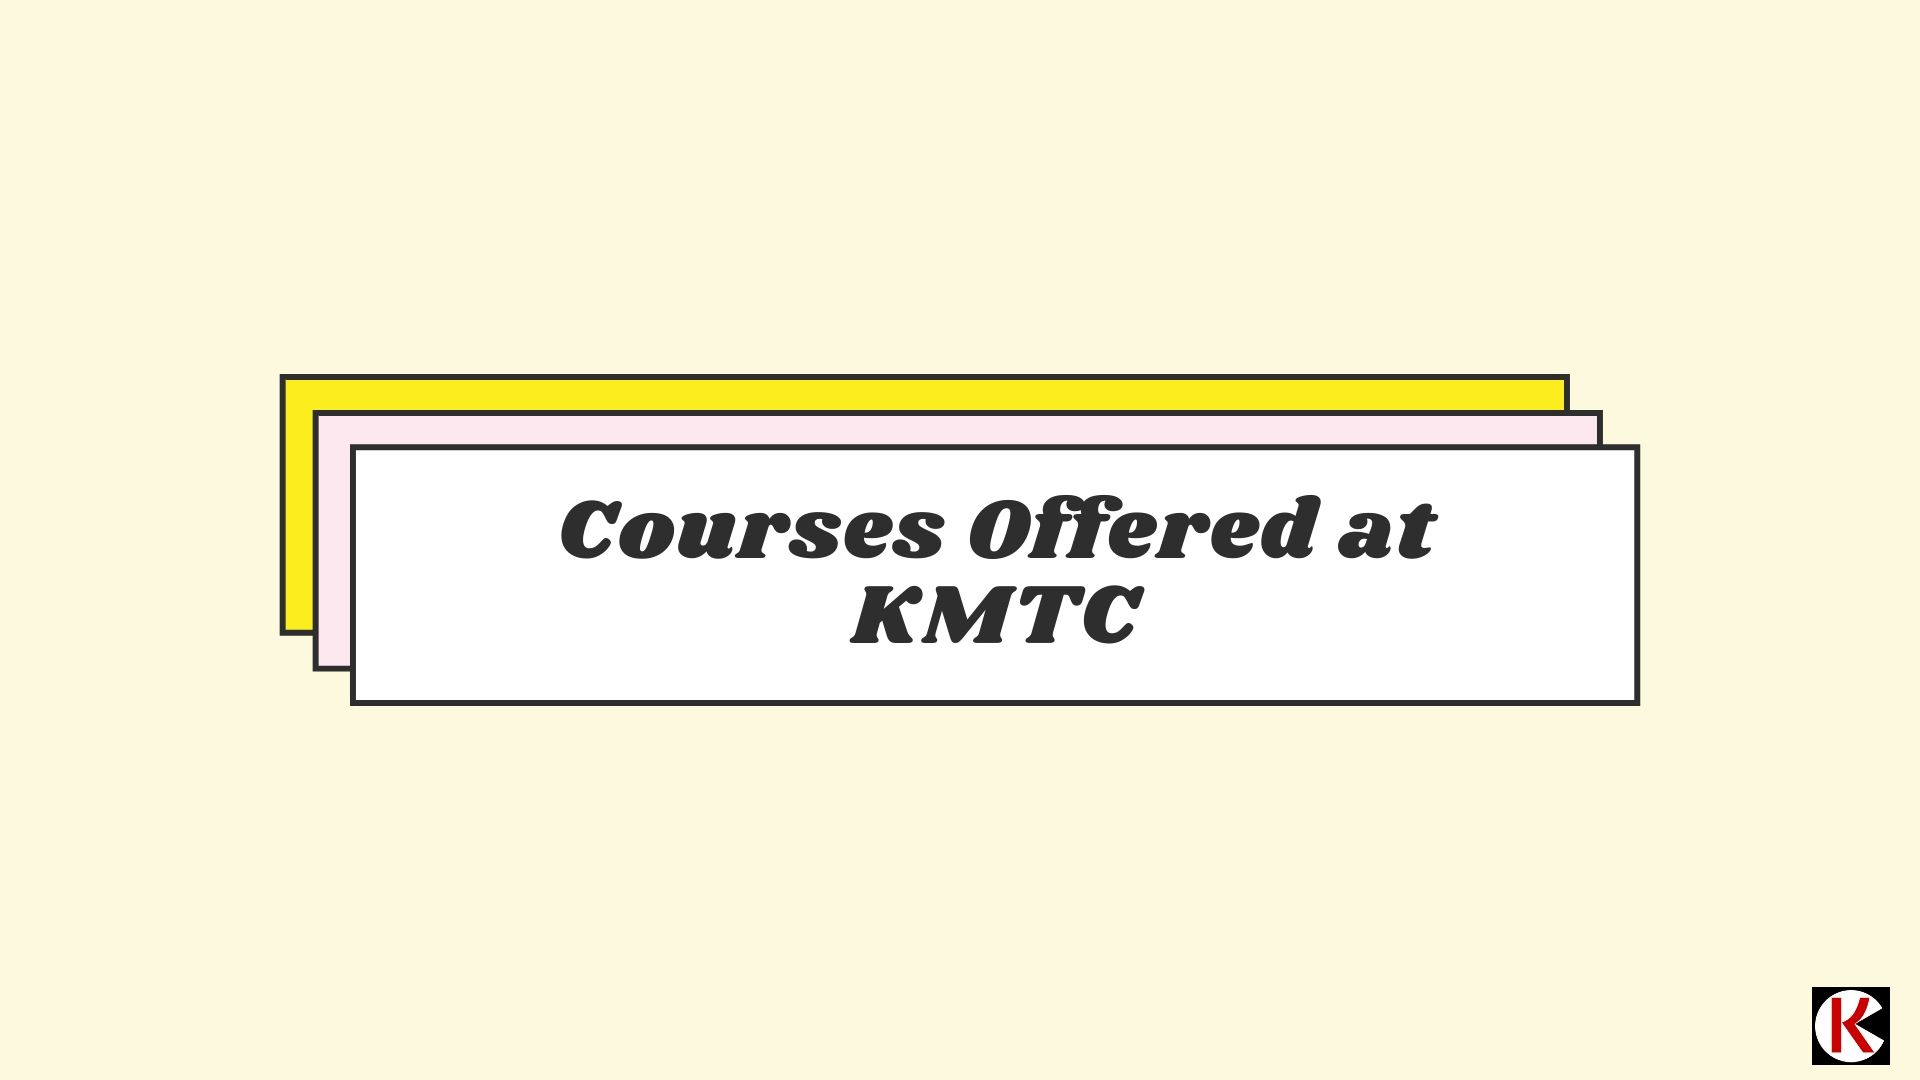 Courses offered at Kenya Medical Training College